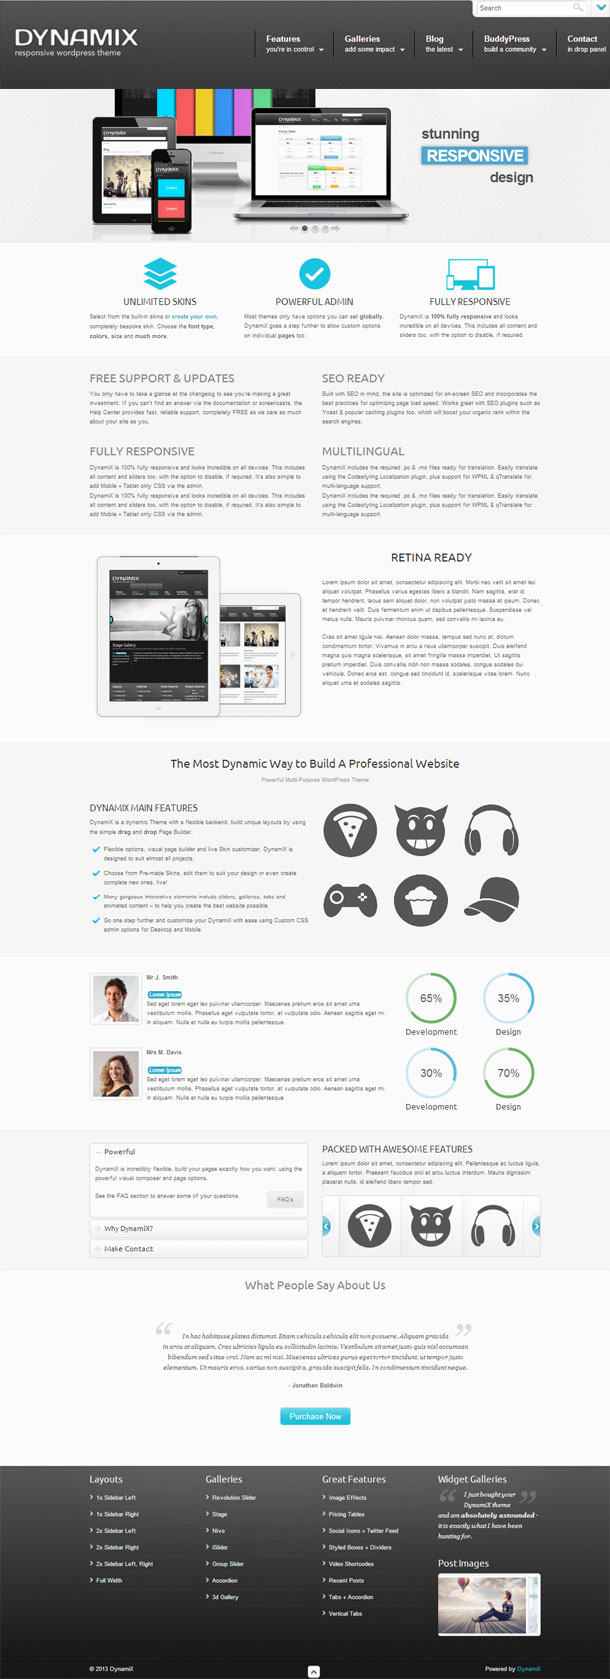 DynamiX The Most Popular WP Themes Theme Image